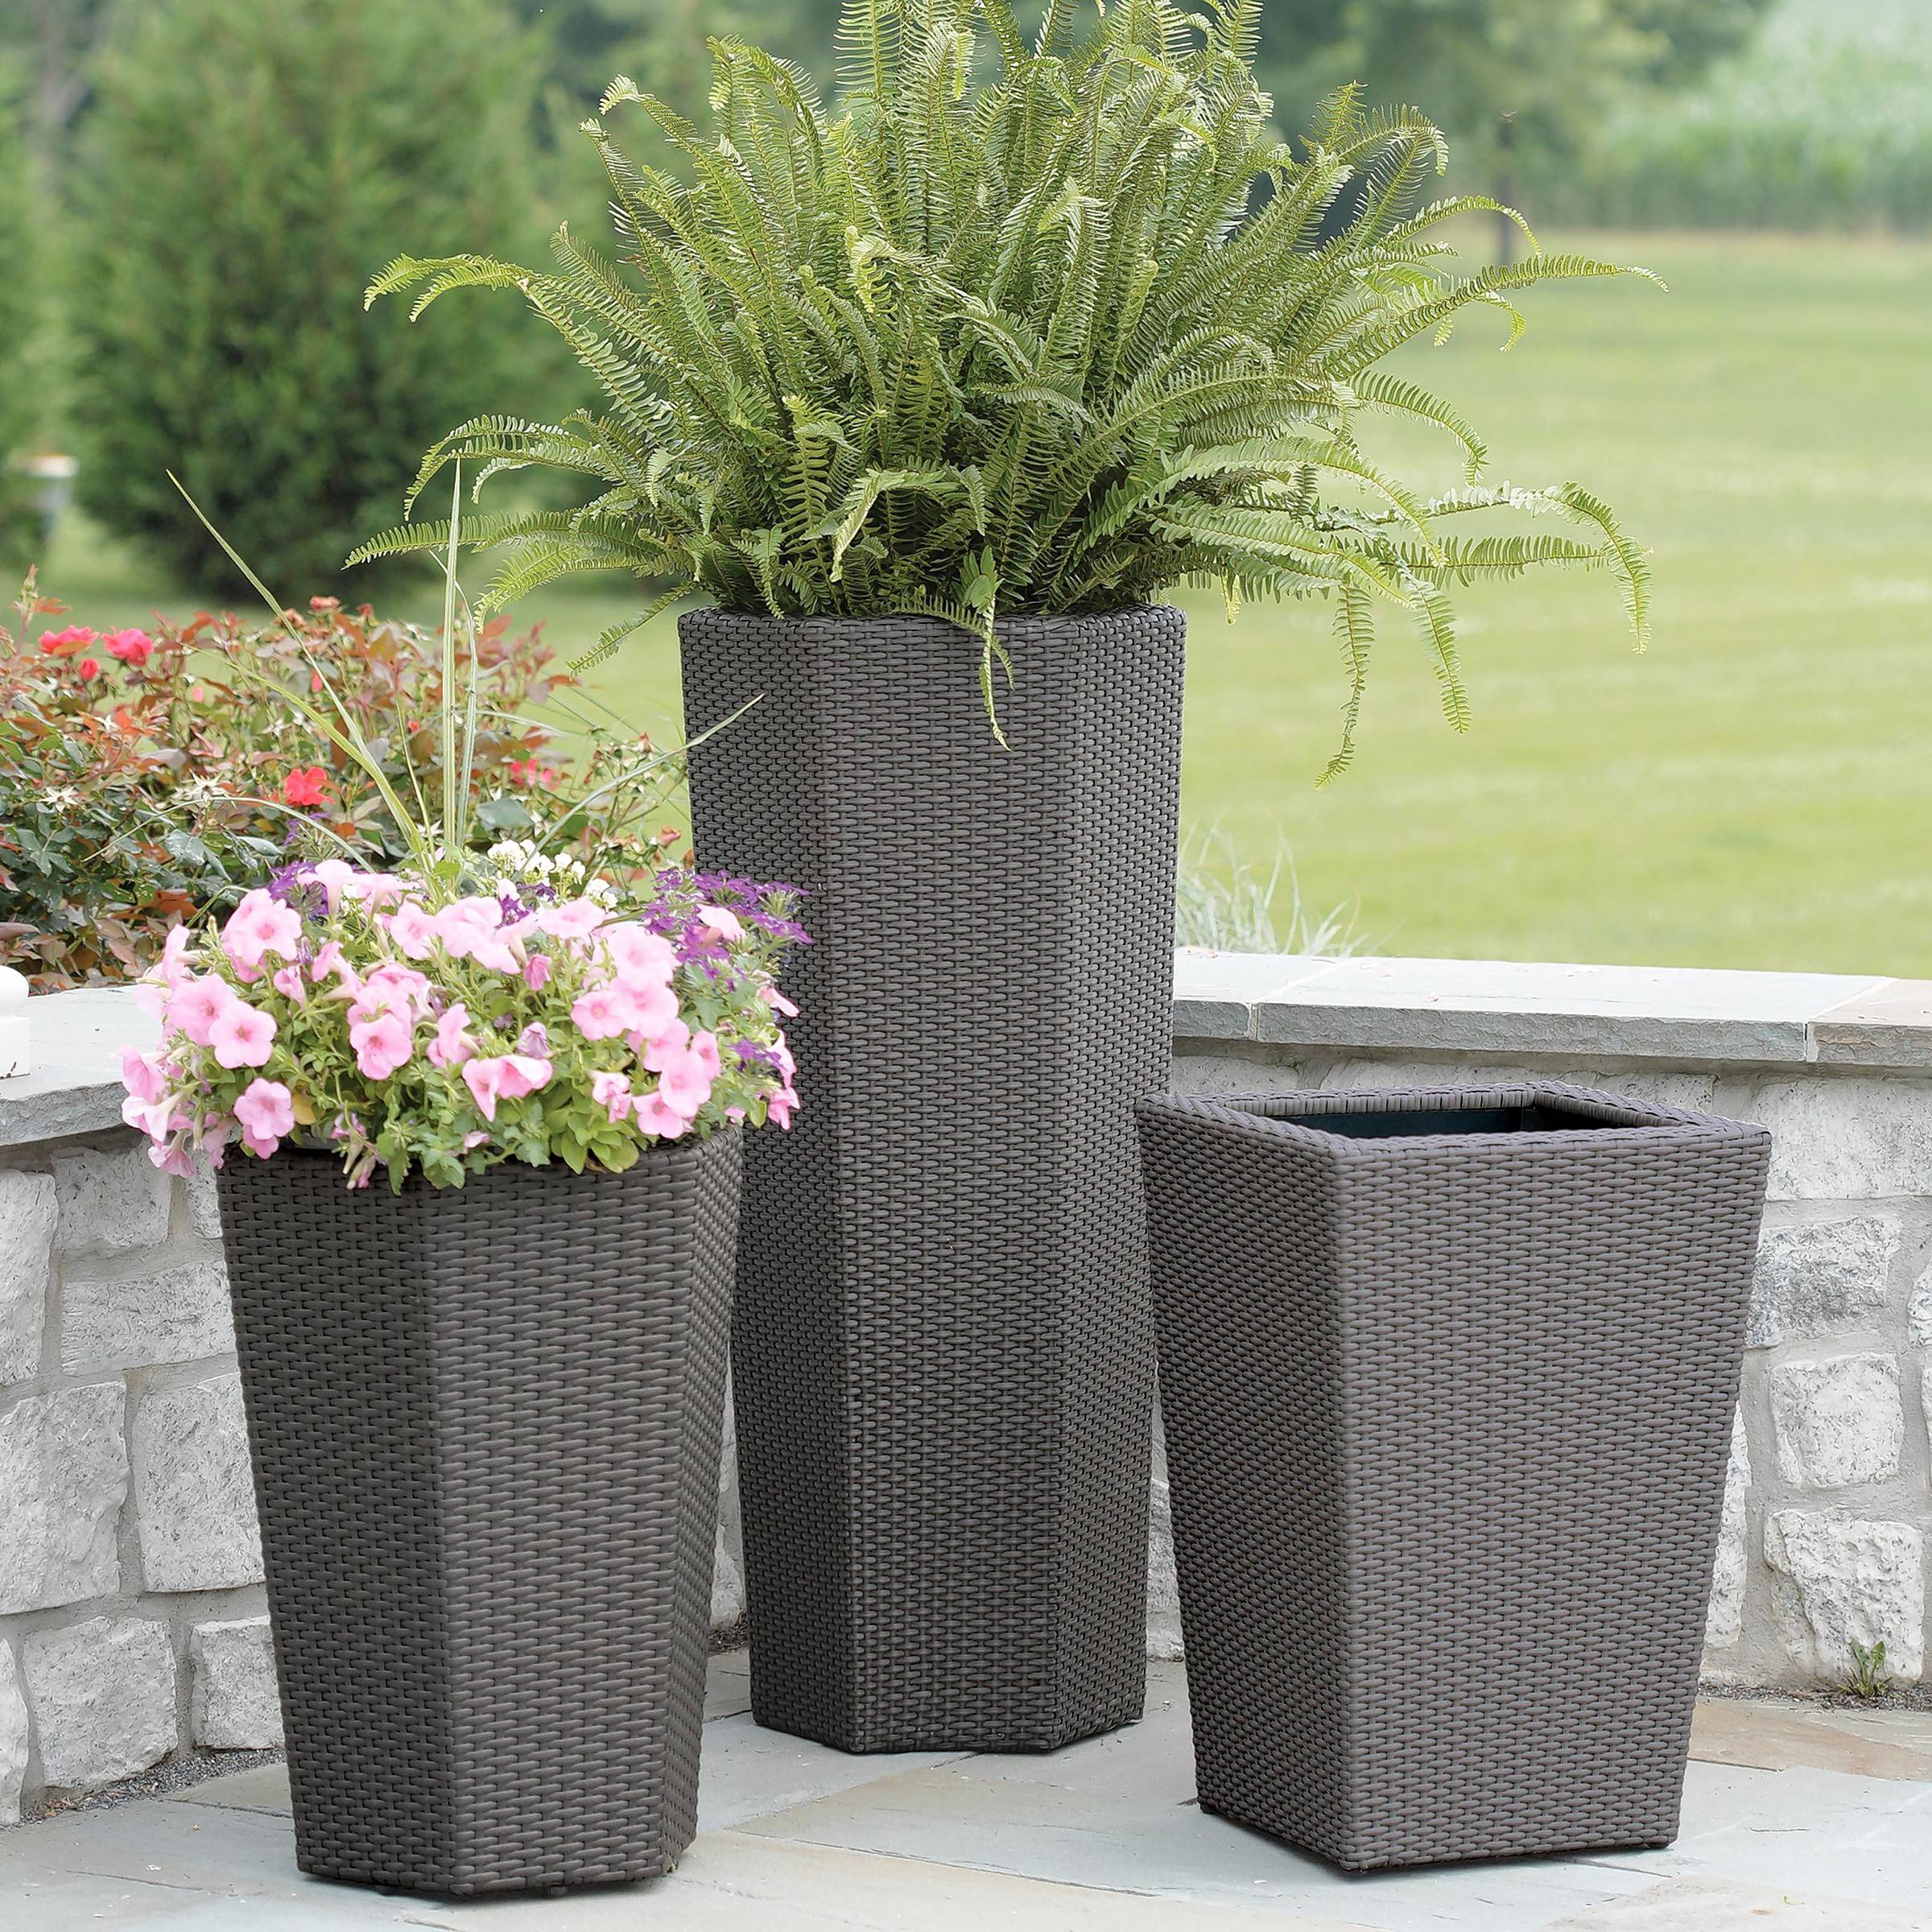 Flower planters for the patio.